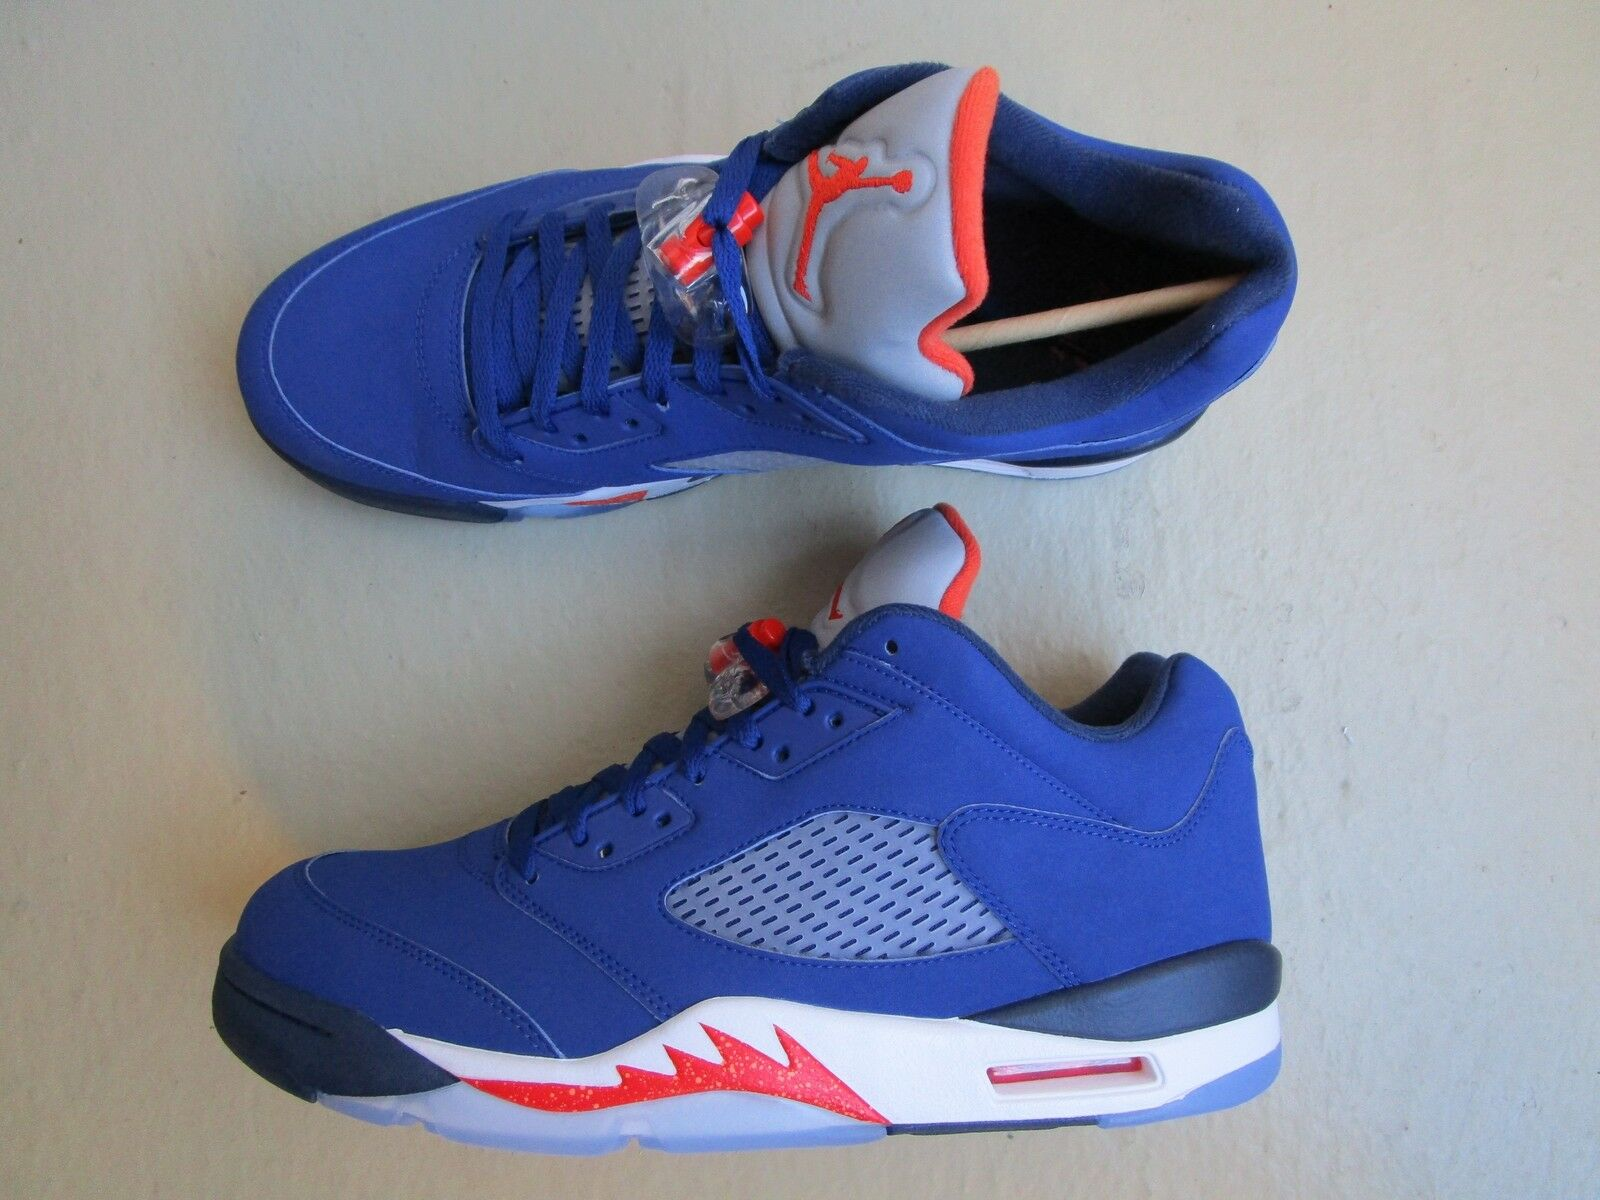 Nike Air Jordan 5/v retro low AzulTeam 45.5 knicks Deep Royal AzulTeam low NaranjaMid Navy 0087c8